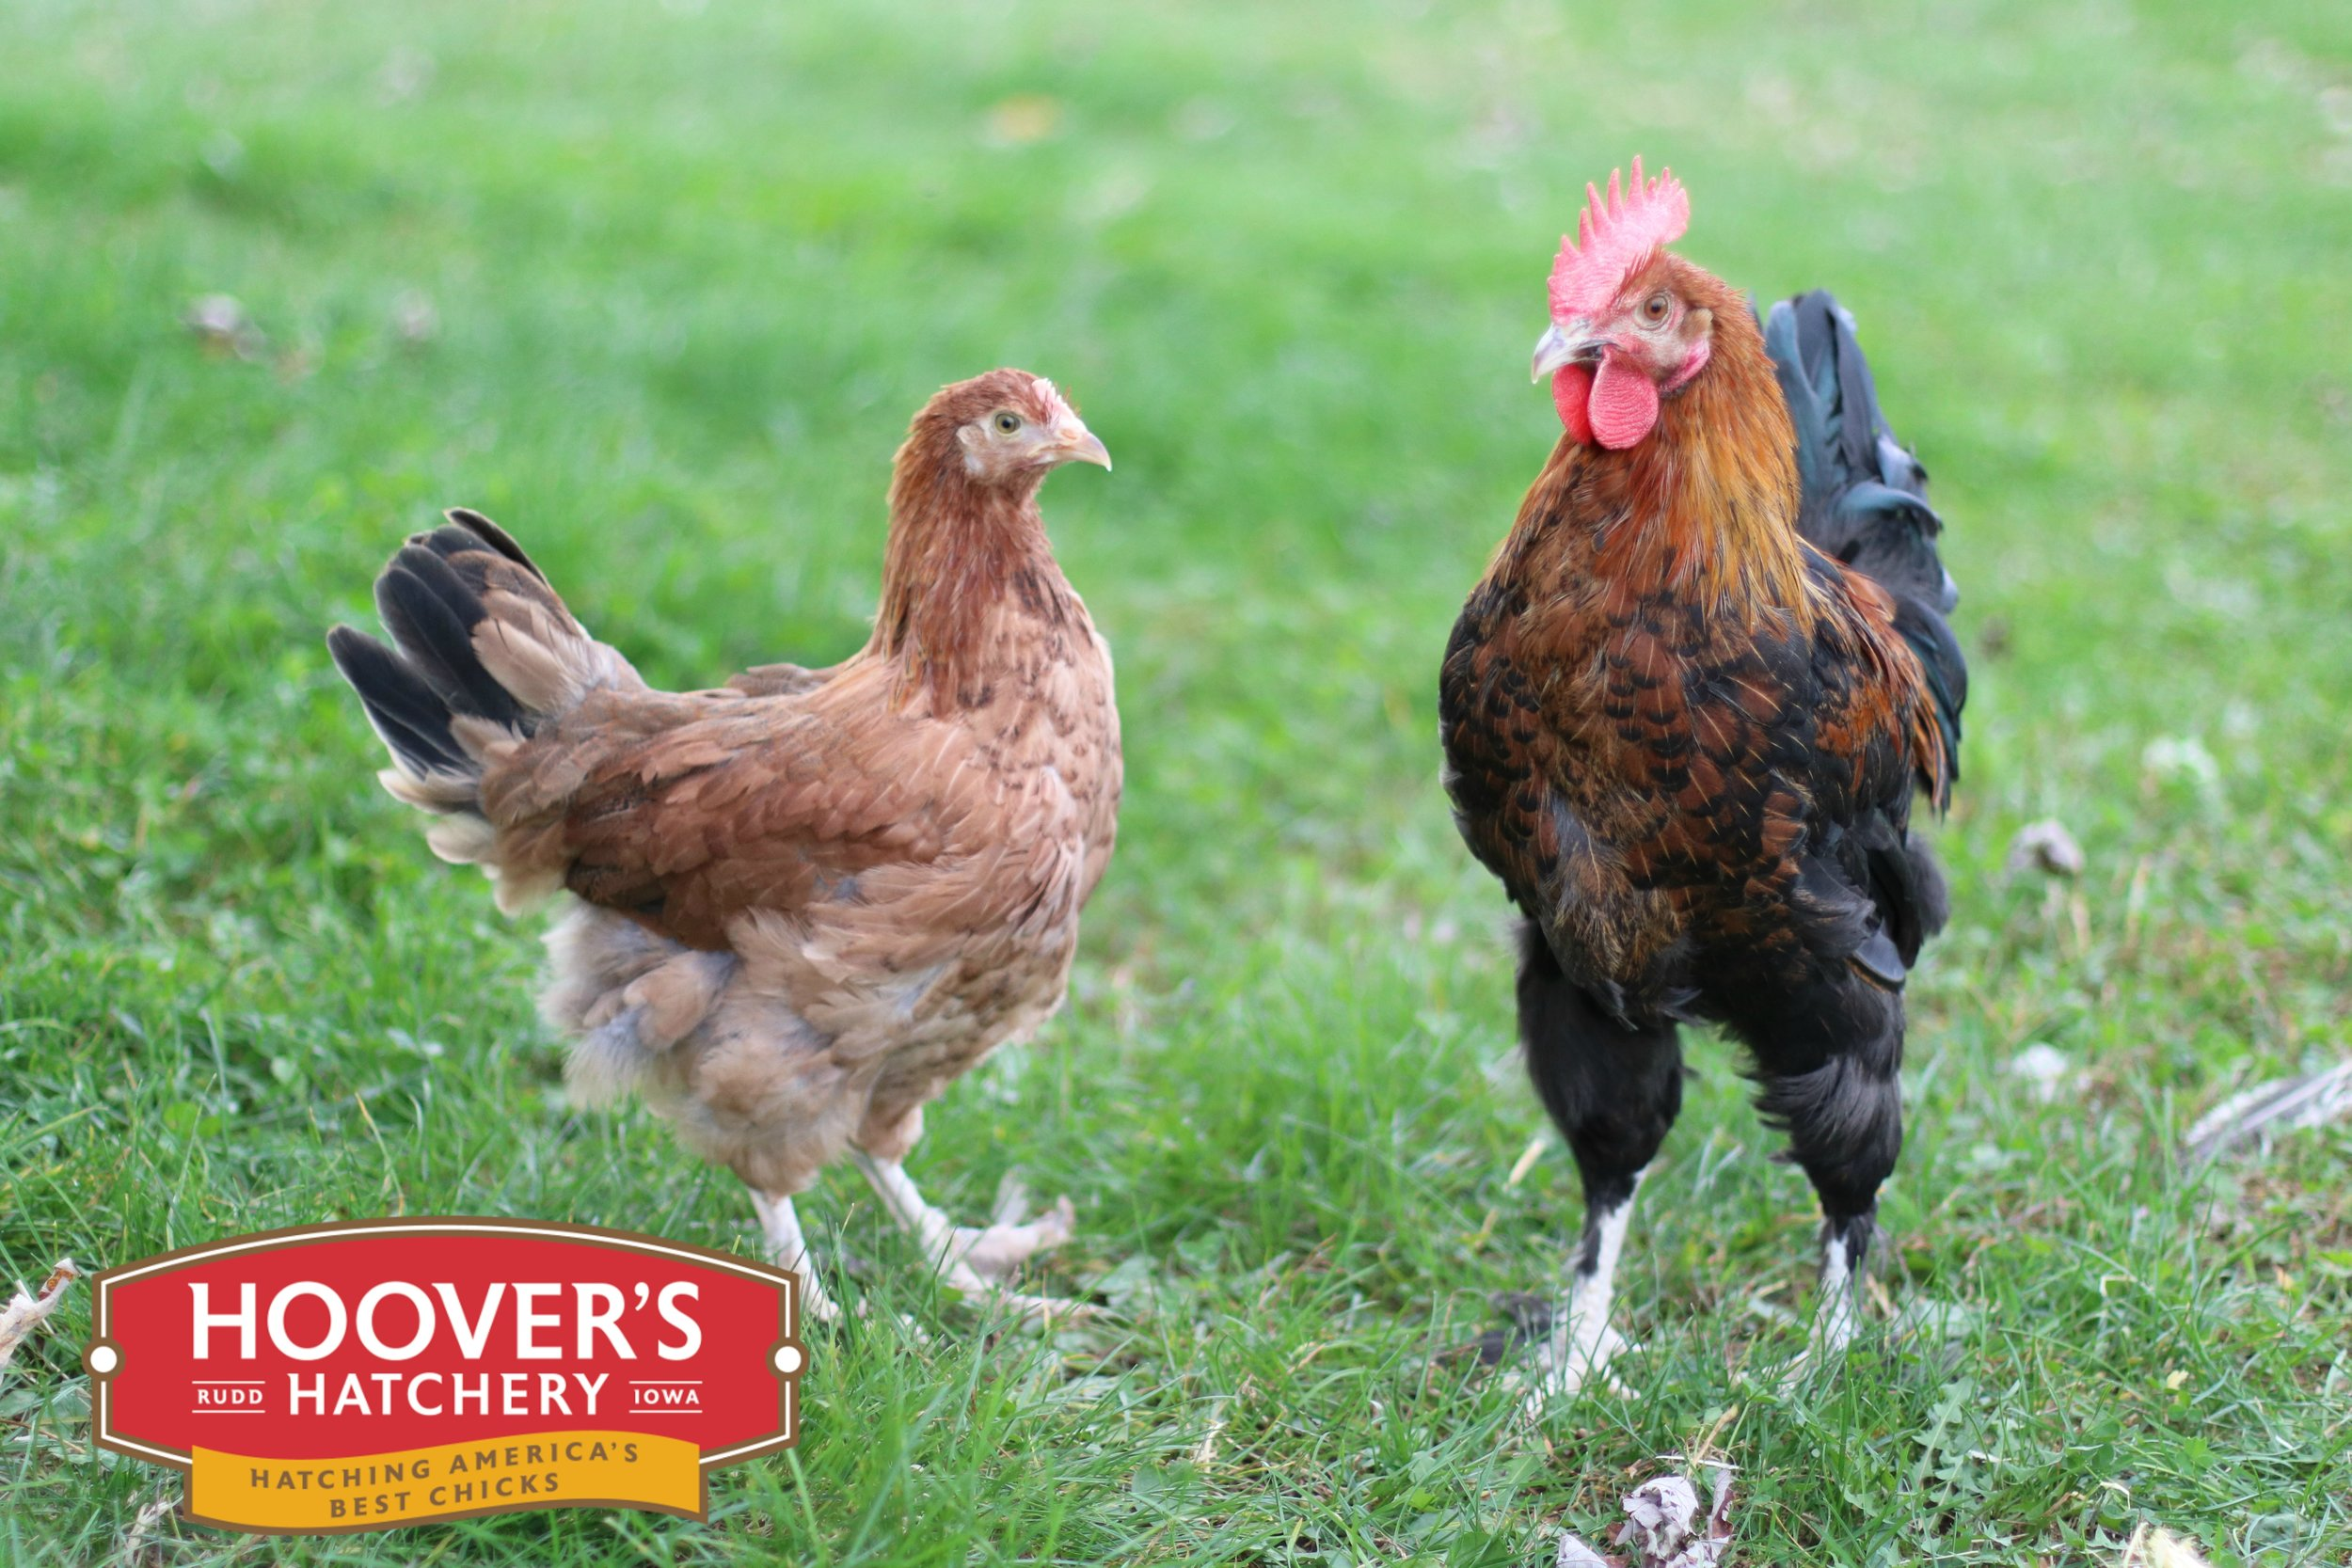 French Wheaton Maran - The Maran breed originates from a town called Marans, France. It is a very hardy breed with a docile temperament. This breed tends to be more athletic, taking to foraging and free ranging more often that other breeds. The hens lay dark chocolate eggs. These tough birds make a great addition to any backyard flock. The French Wheaten Maran is sold in straight run only. APPROX. 200 MEDIUM EGGS/YEAR | EGG COLOR: BROWN | MATURE WT: MALE 6 LBS. FEMALE 4.5 LBS.